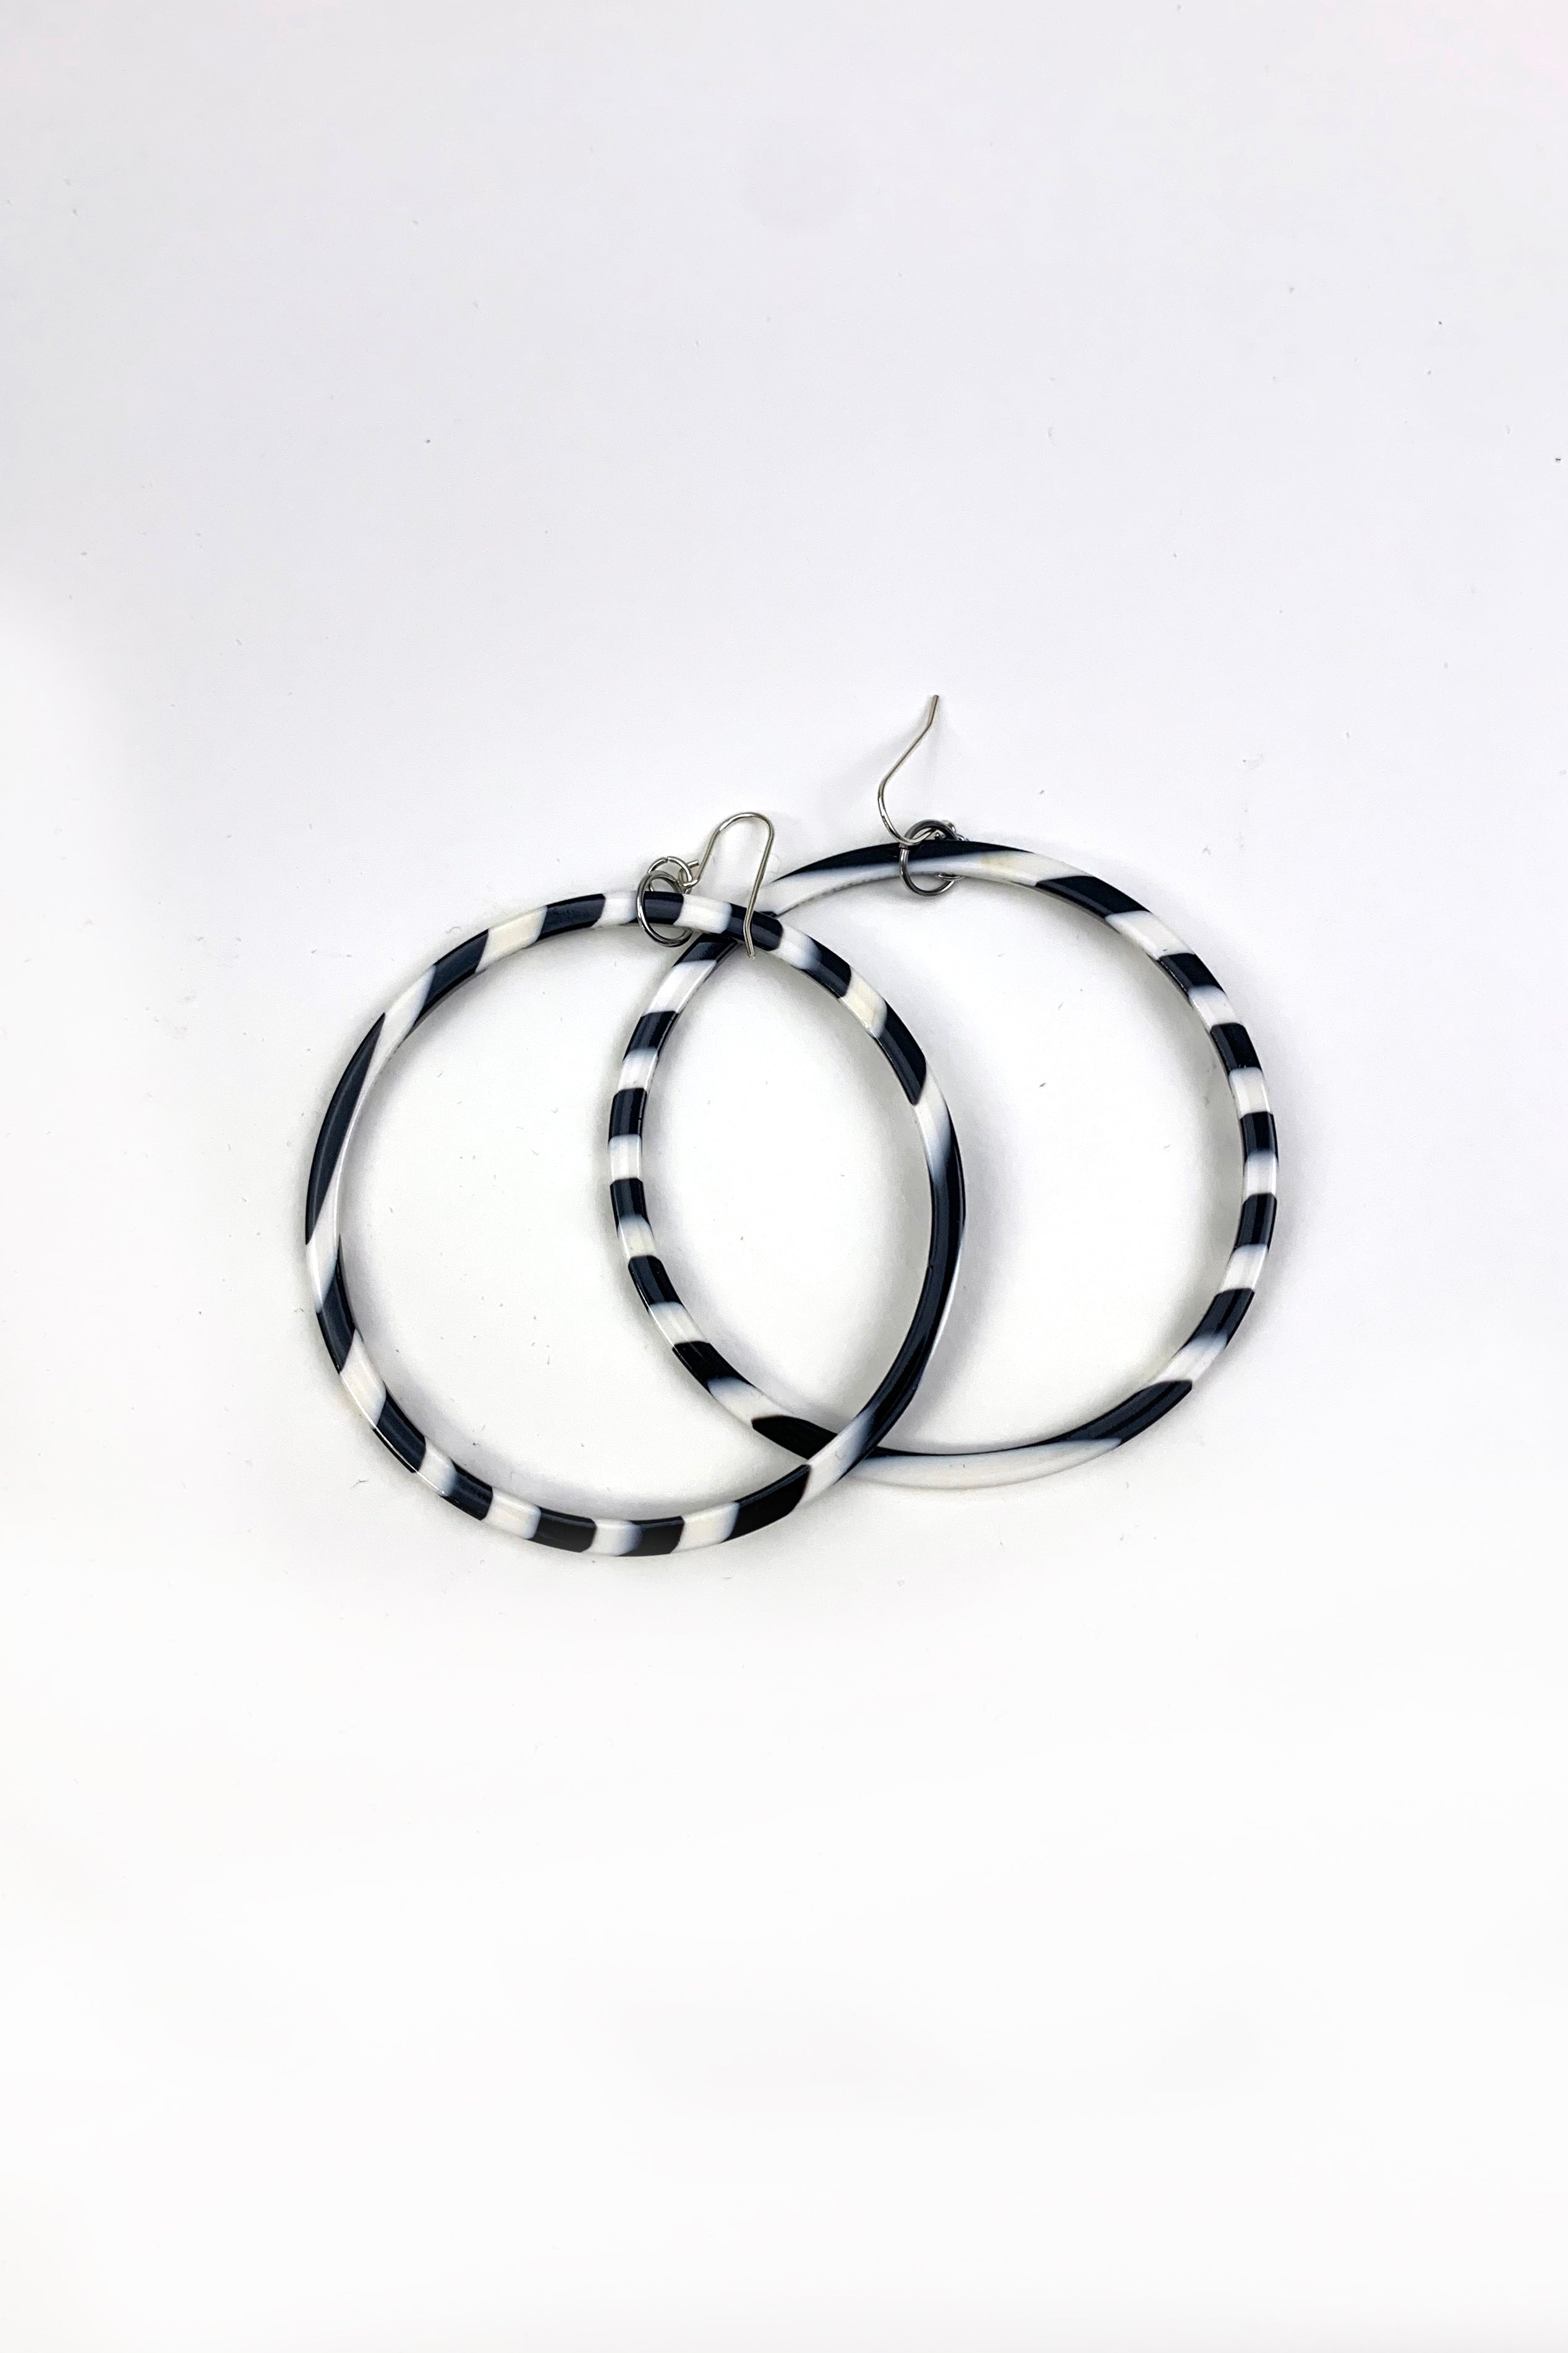 XXL Cellulose Acetate Round Hoop Earrings